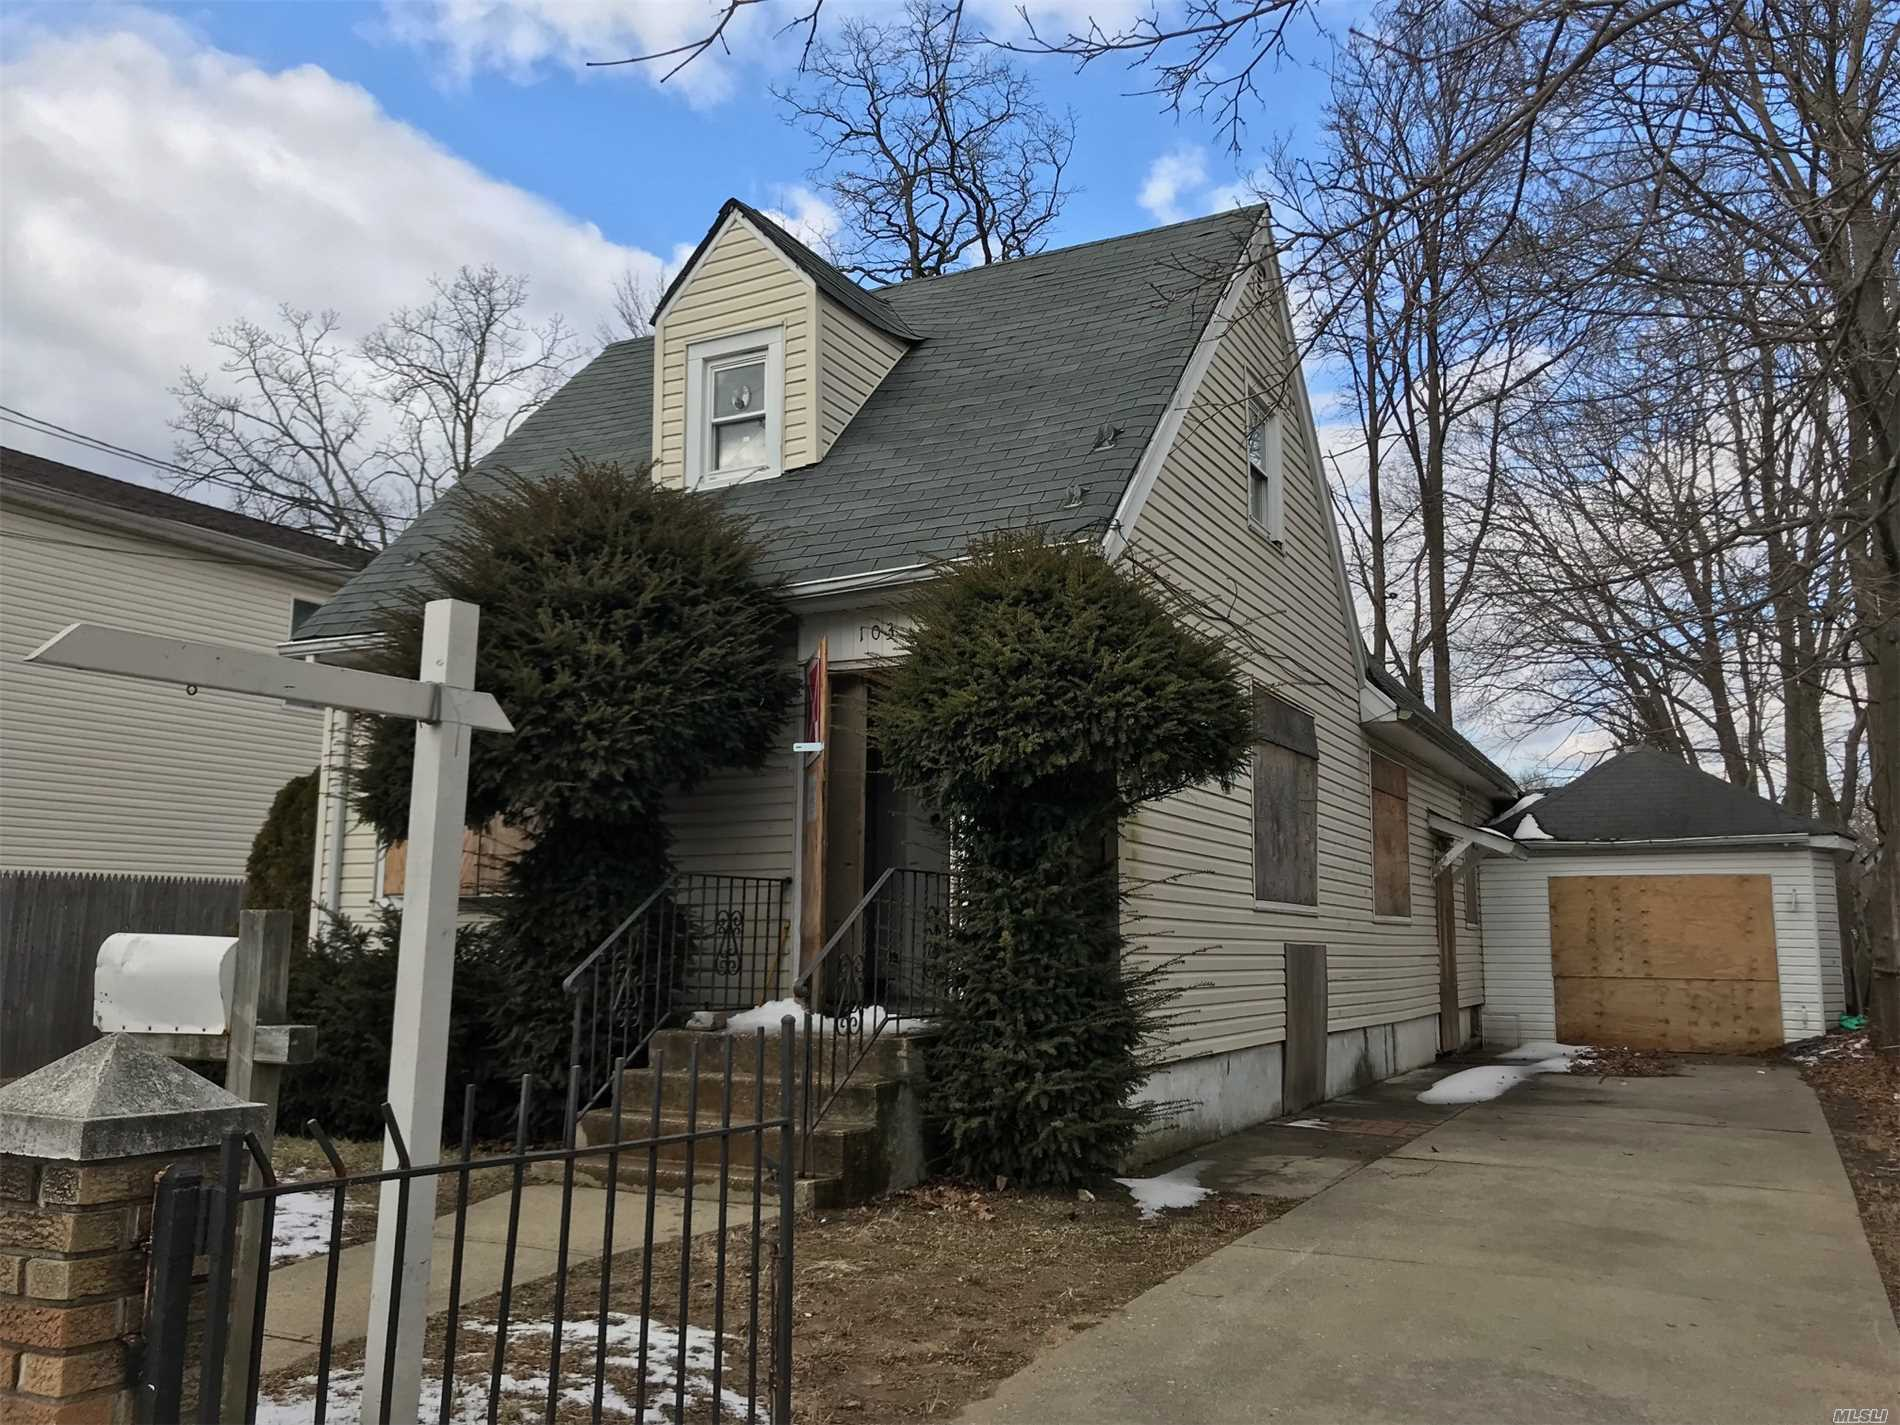 Great Home In Need Of Tlc.... Being Sold As Is, Design This Home To Be Your Own! With Some Love, This Will Be An Amazing Home, Full Basement, Lots Of Space... Cash Only, As Is Sale, Don't Miss This!